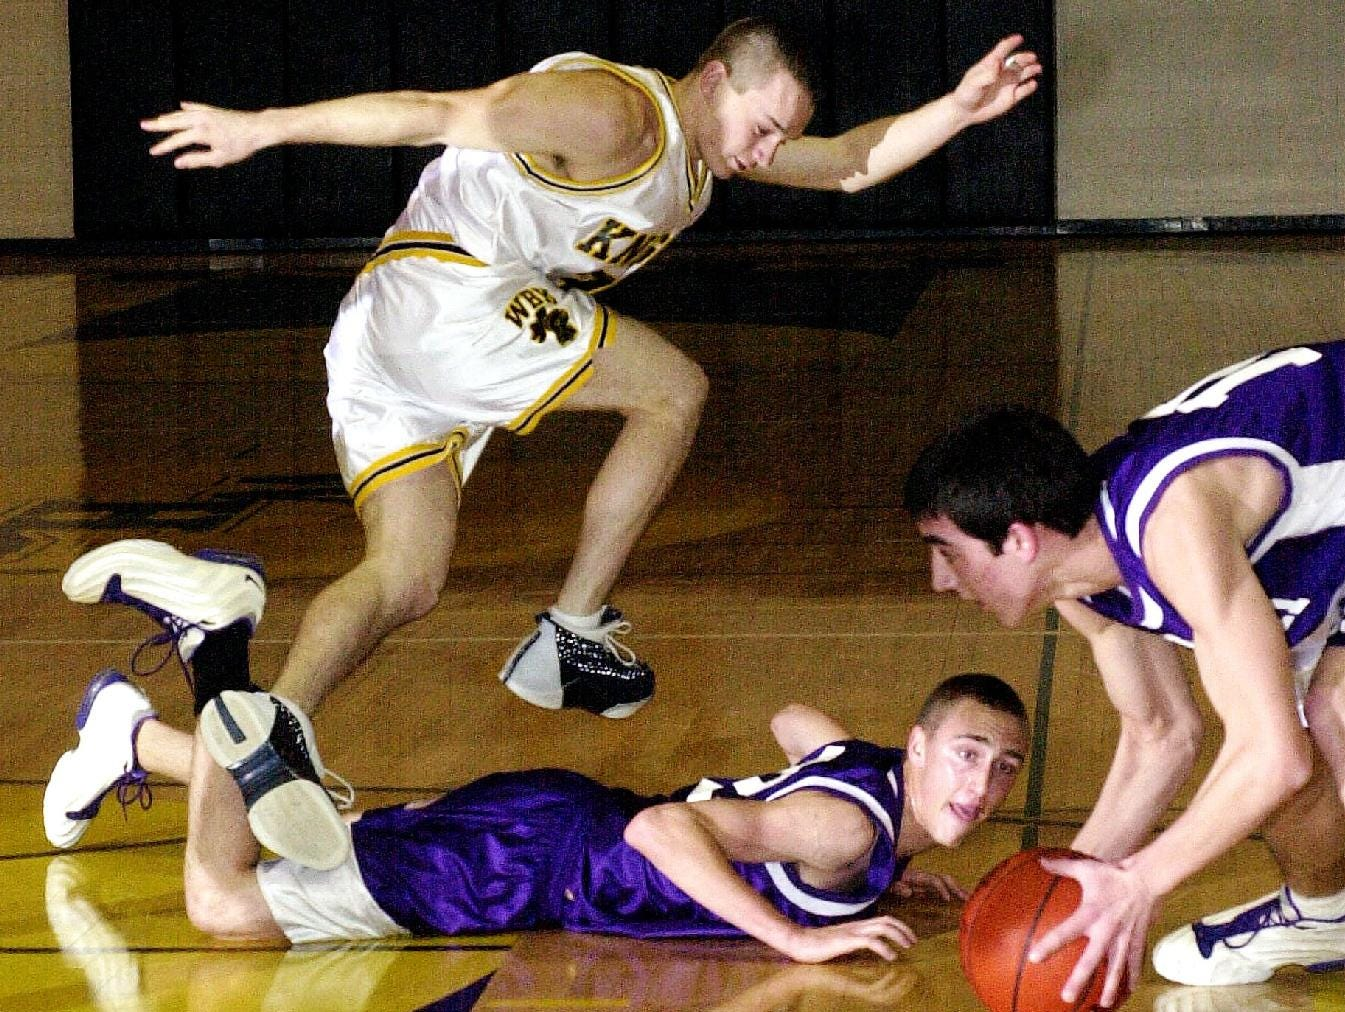 2001: Windsor's Matt Astrologo, left, hops over Norwich's Tim McKown, center, as they and Norwich's Brian Collier, right, go for a loose ball late in the first quarter of Fri night's game at Windsor High School.